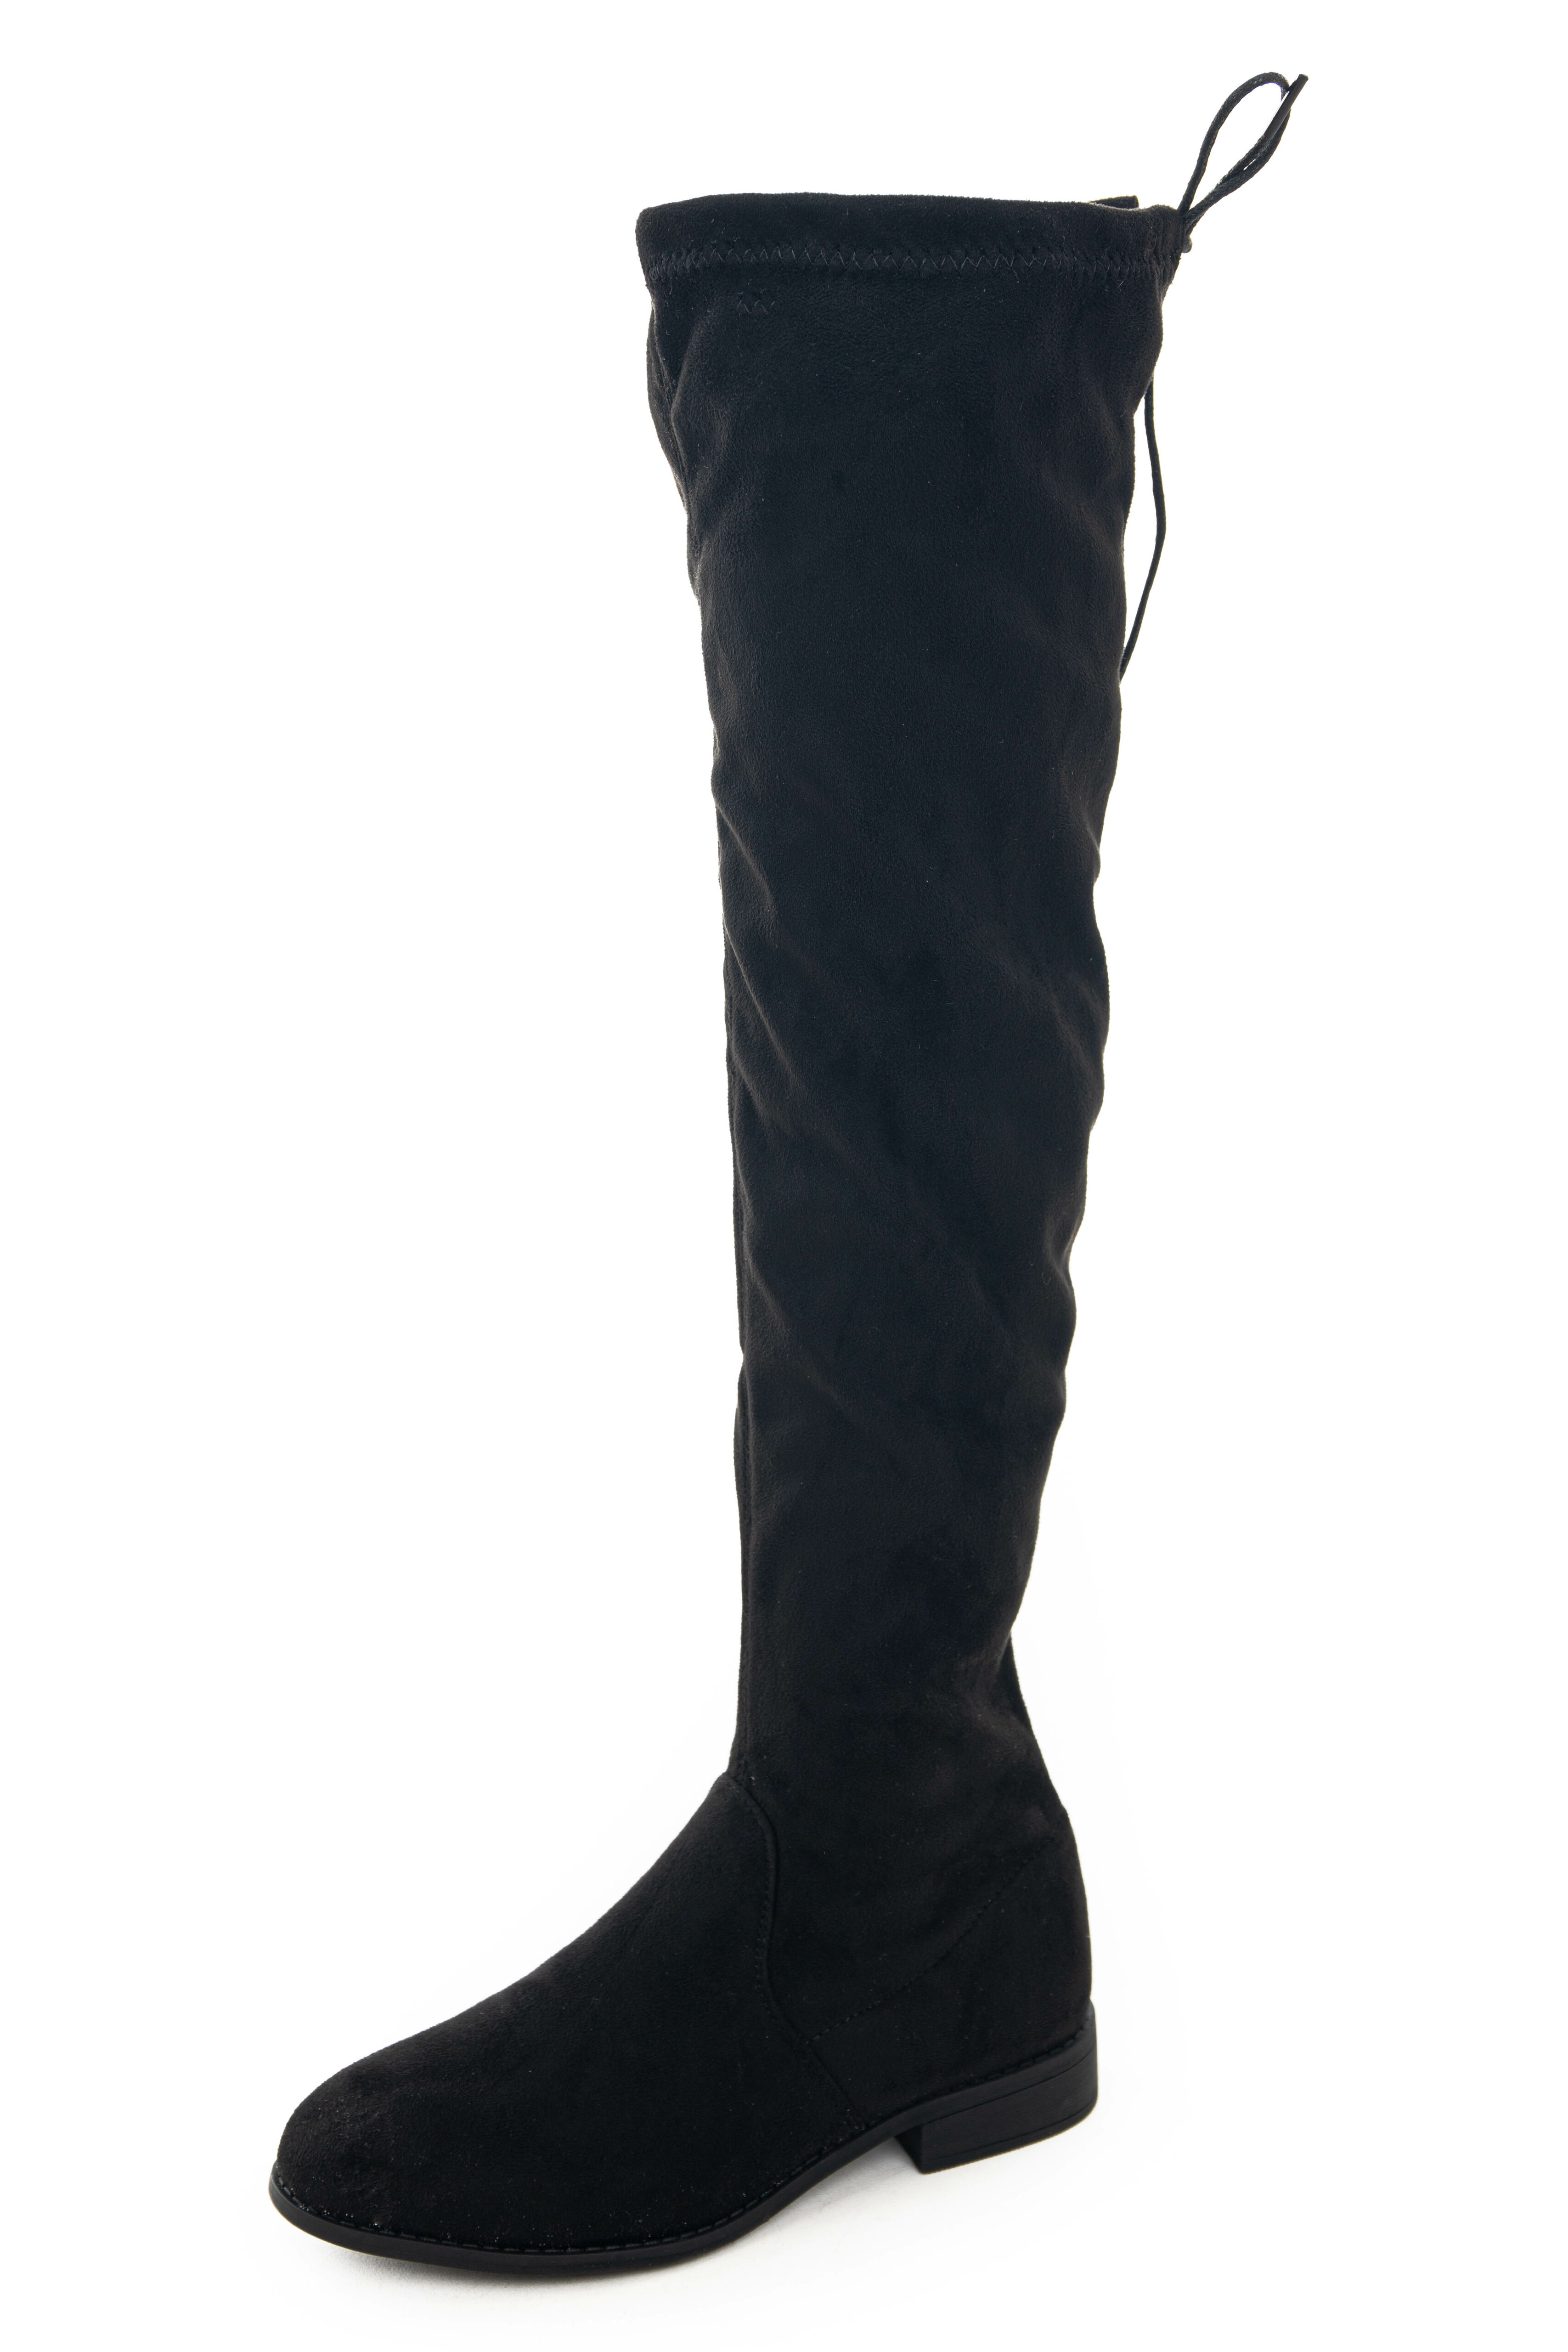 Black Suede Knee High Boots with Drawstring